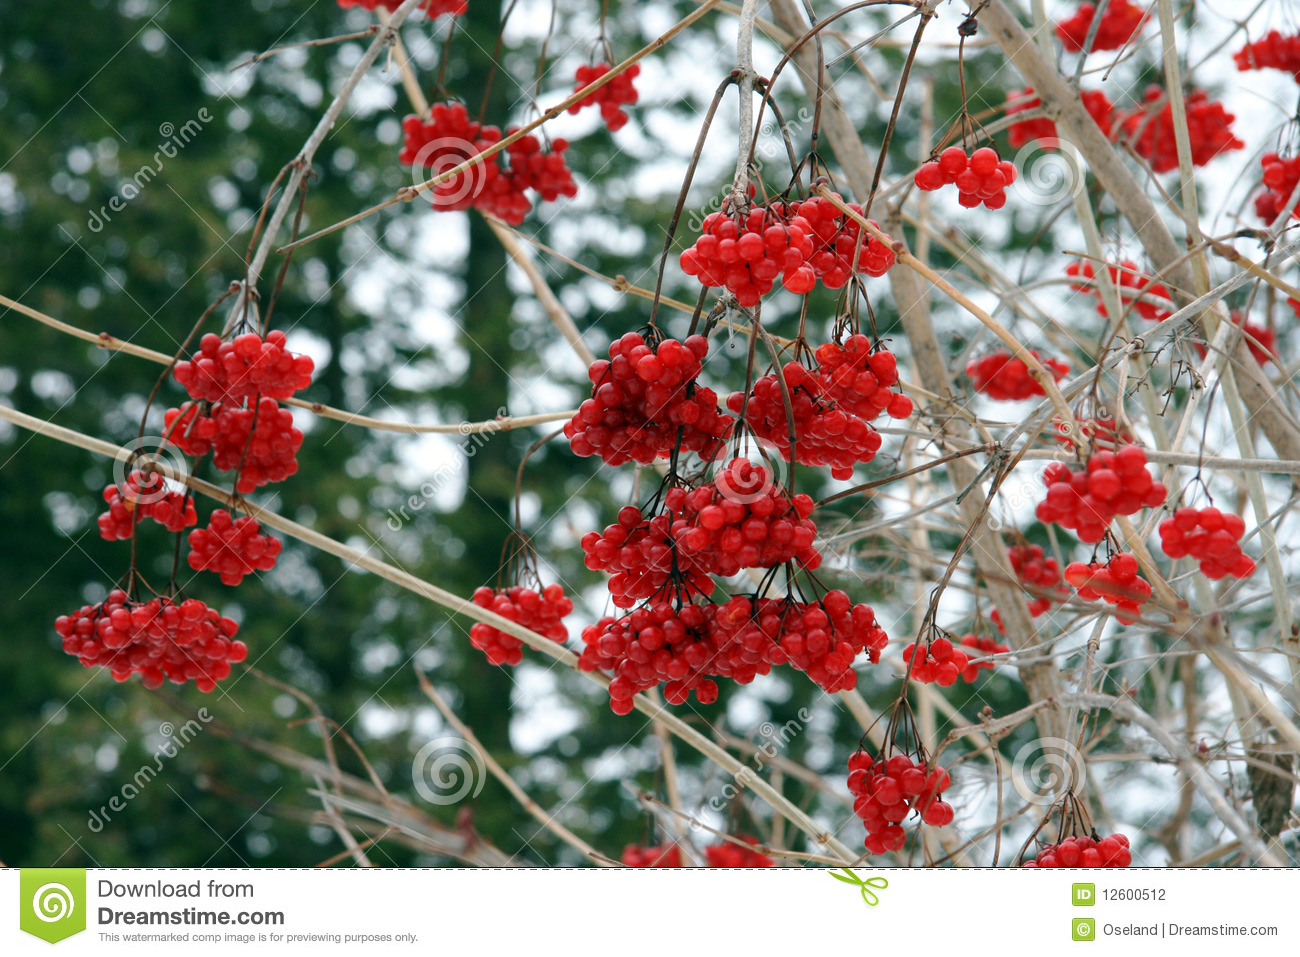 Plant Met Rode Bessen Red Winter Berries Stock Photography Image 12600512